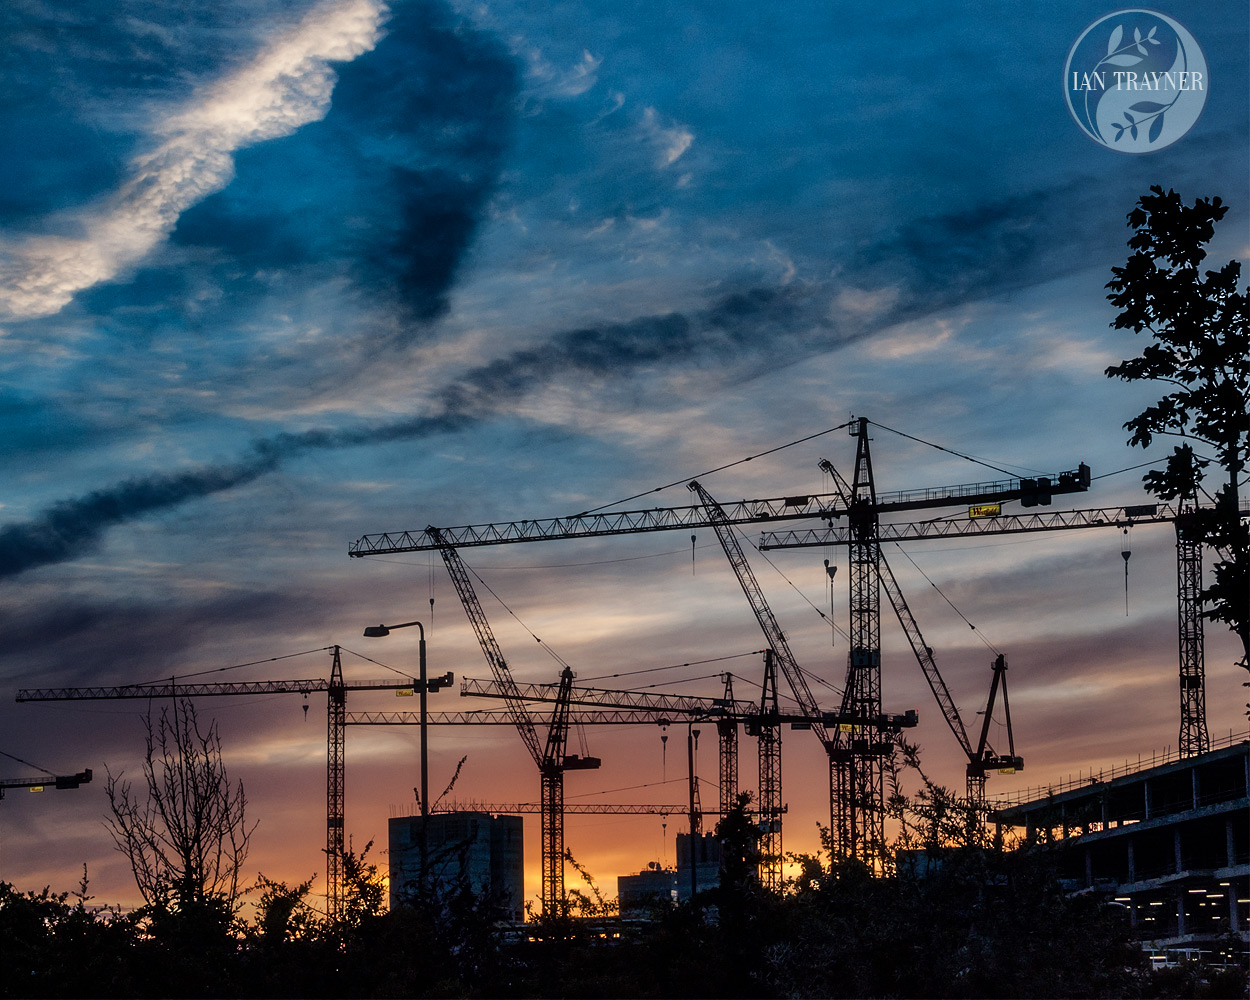 Dramatic sky at sunset. Cranes building the Westfield London shopping centre in Shepherd's Bush. Photo by Ian Trayner.